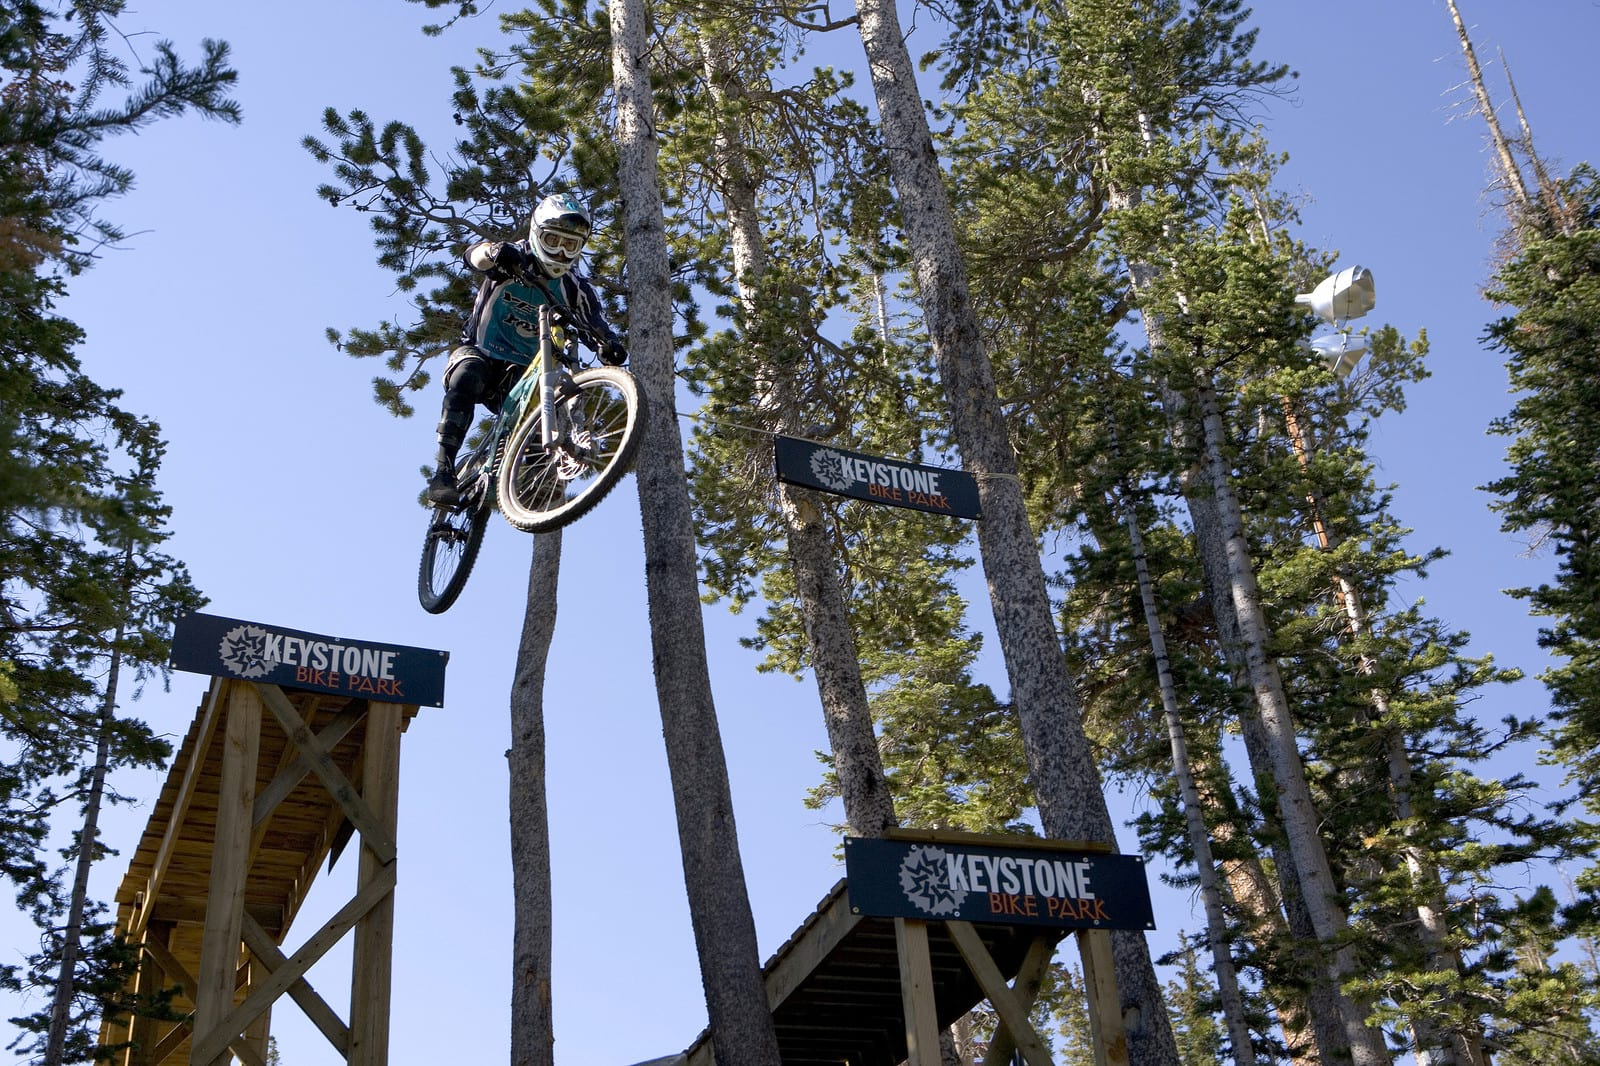 Keystone Bike Park Drop Zone